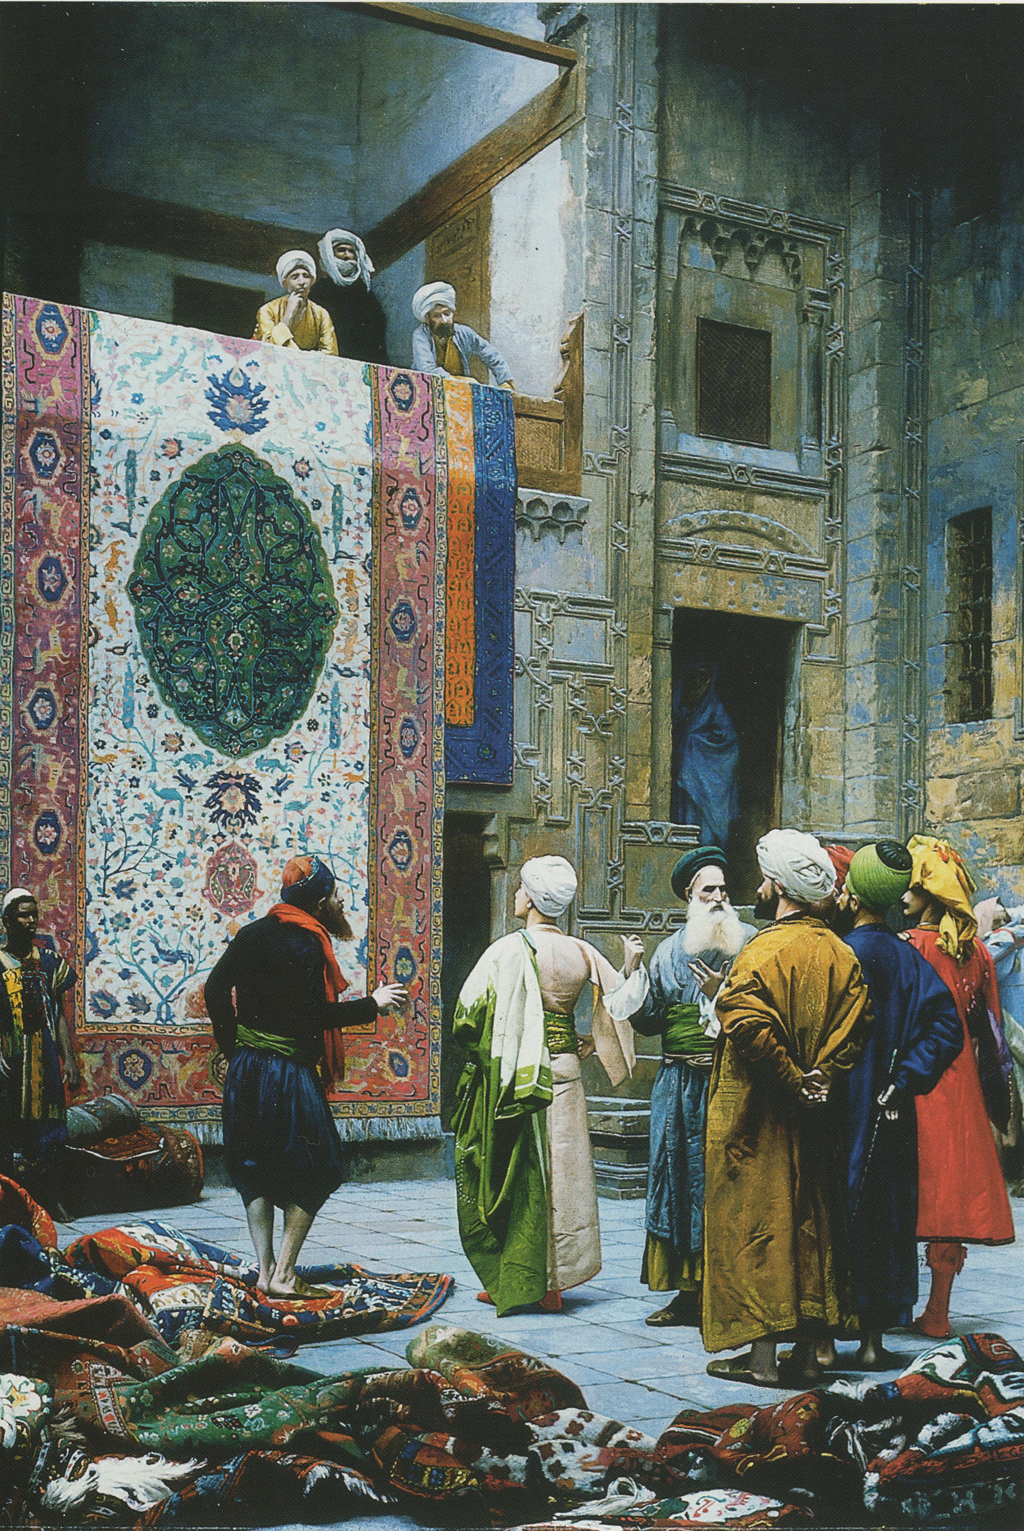 The Rug Merchants of Cairo (Le marchand de tapis au Caire) by Jean Léon Gérôme c.1879